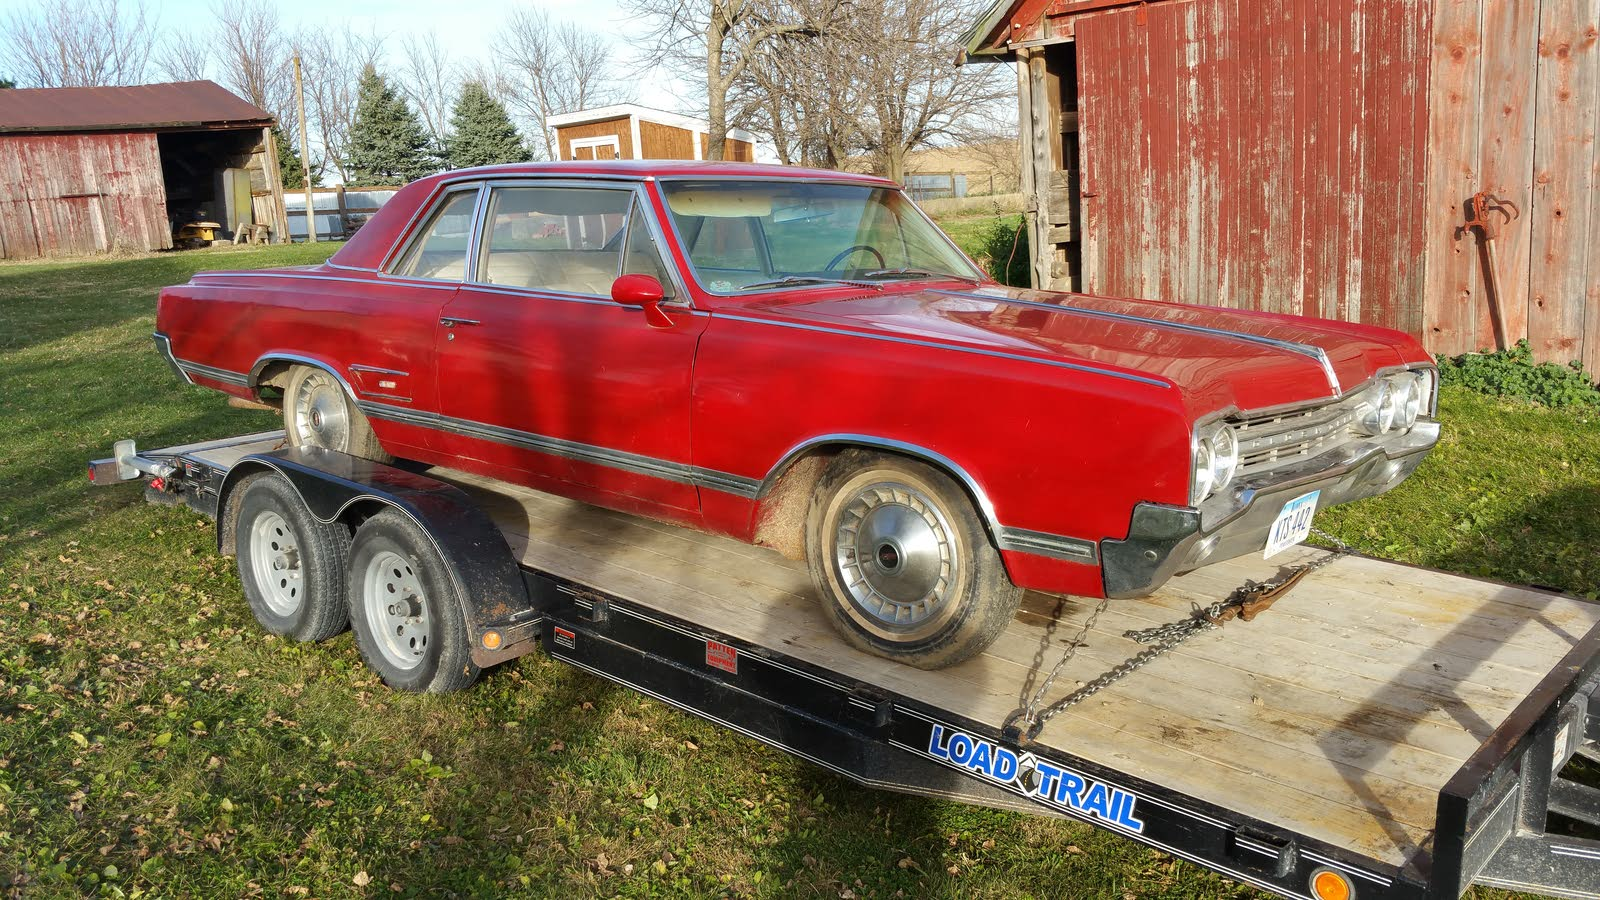 Oldsmobile 442 Questions - Have 1965 F85 Cutlass sport coupe